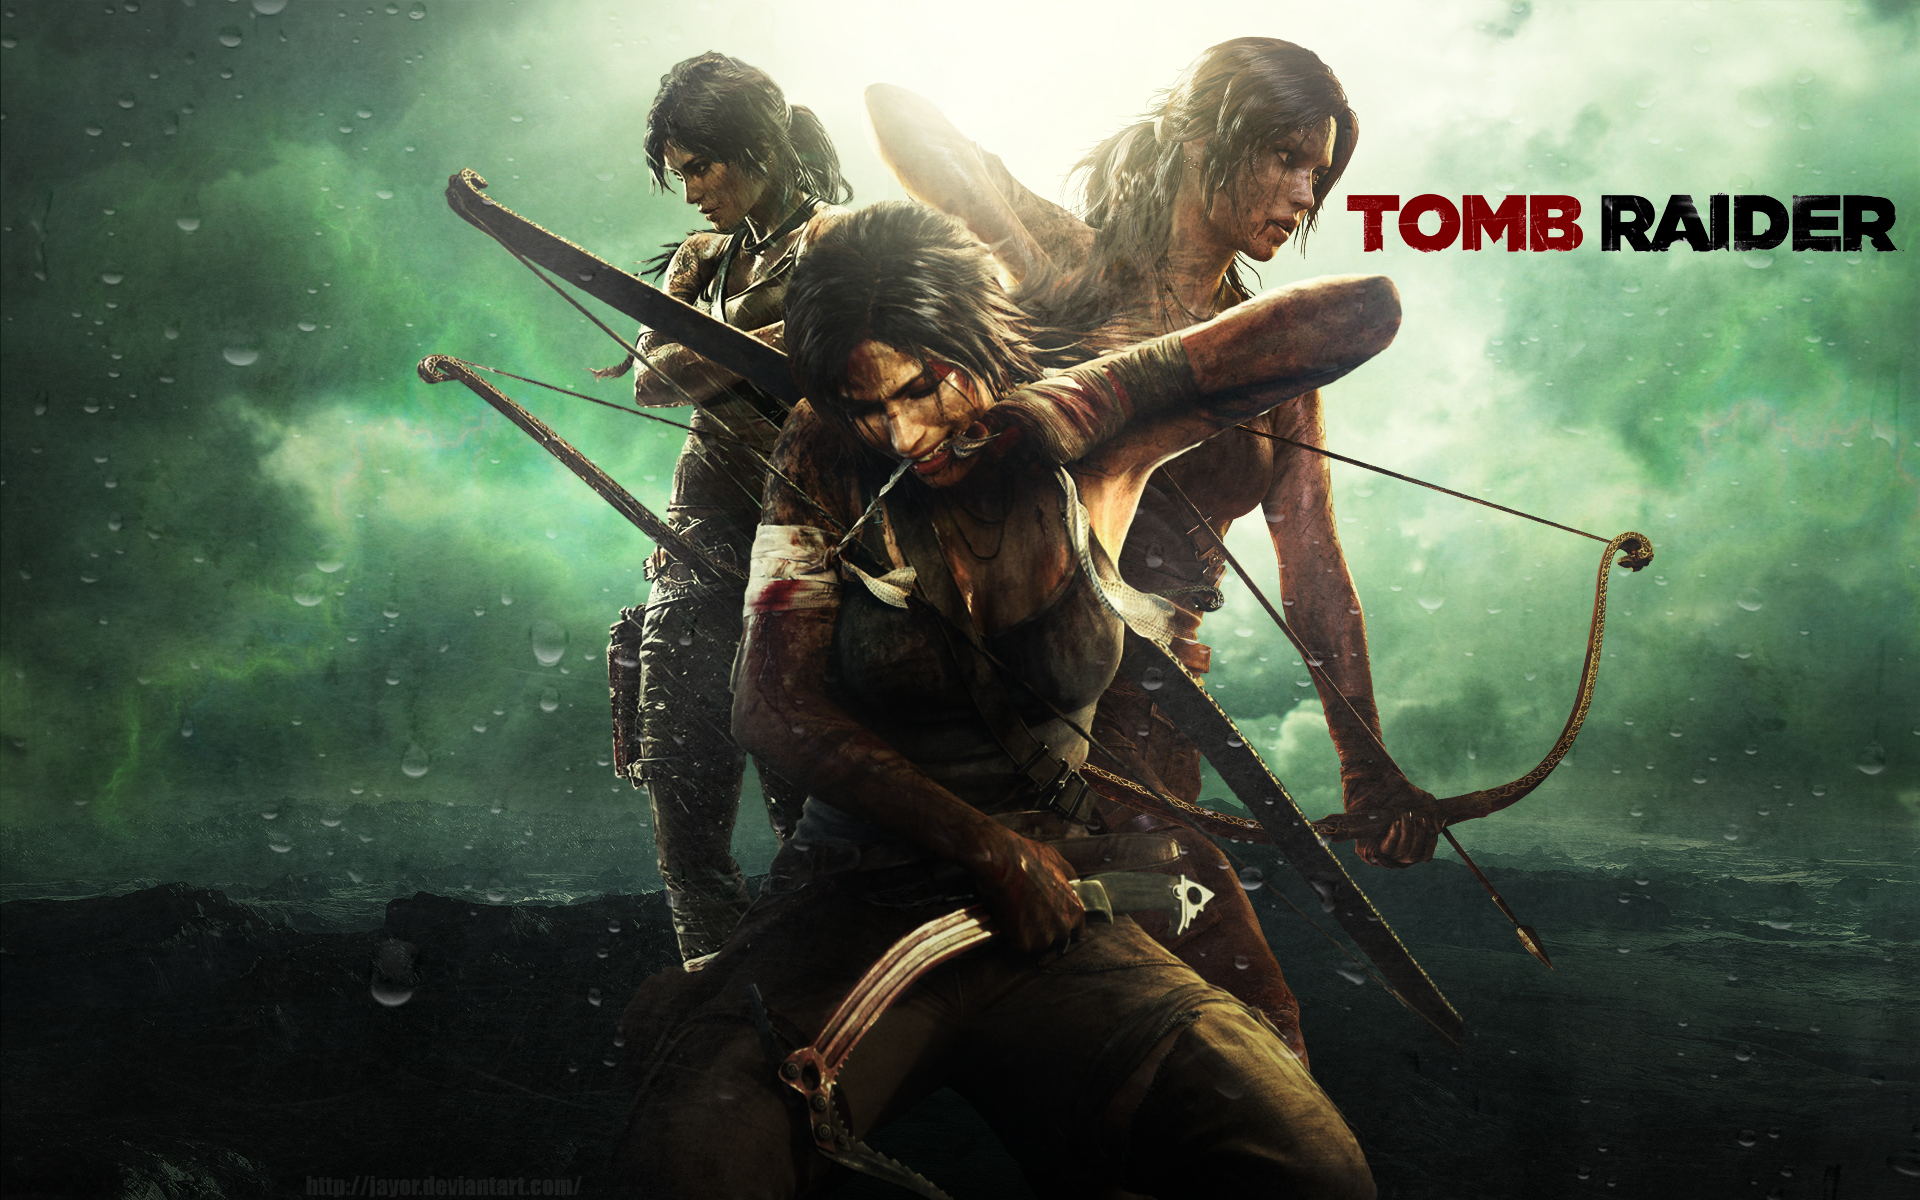 Tomb Raider 2013 Wallpaper By Jayor On Deviantart